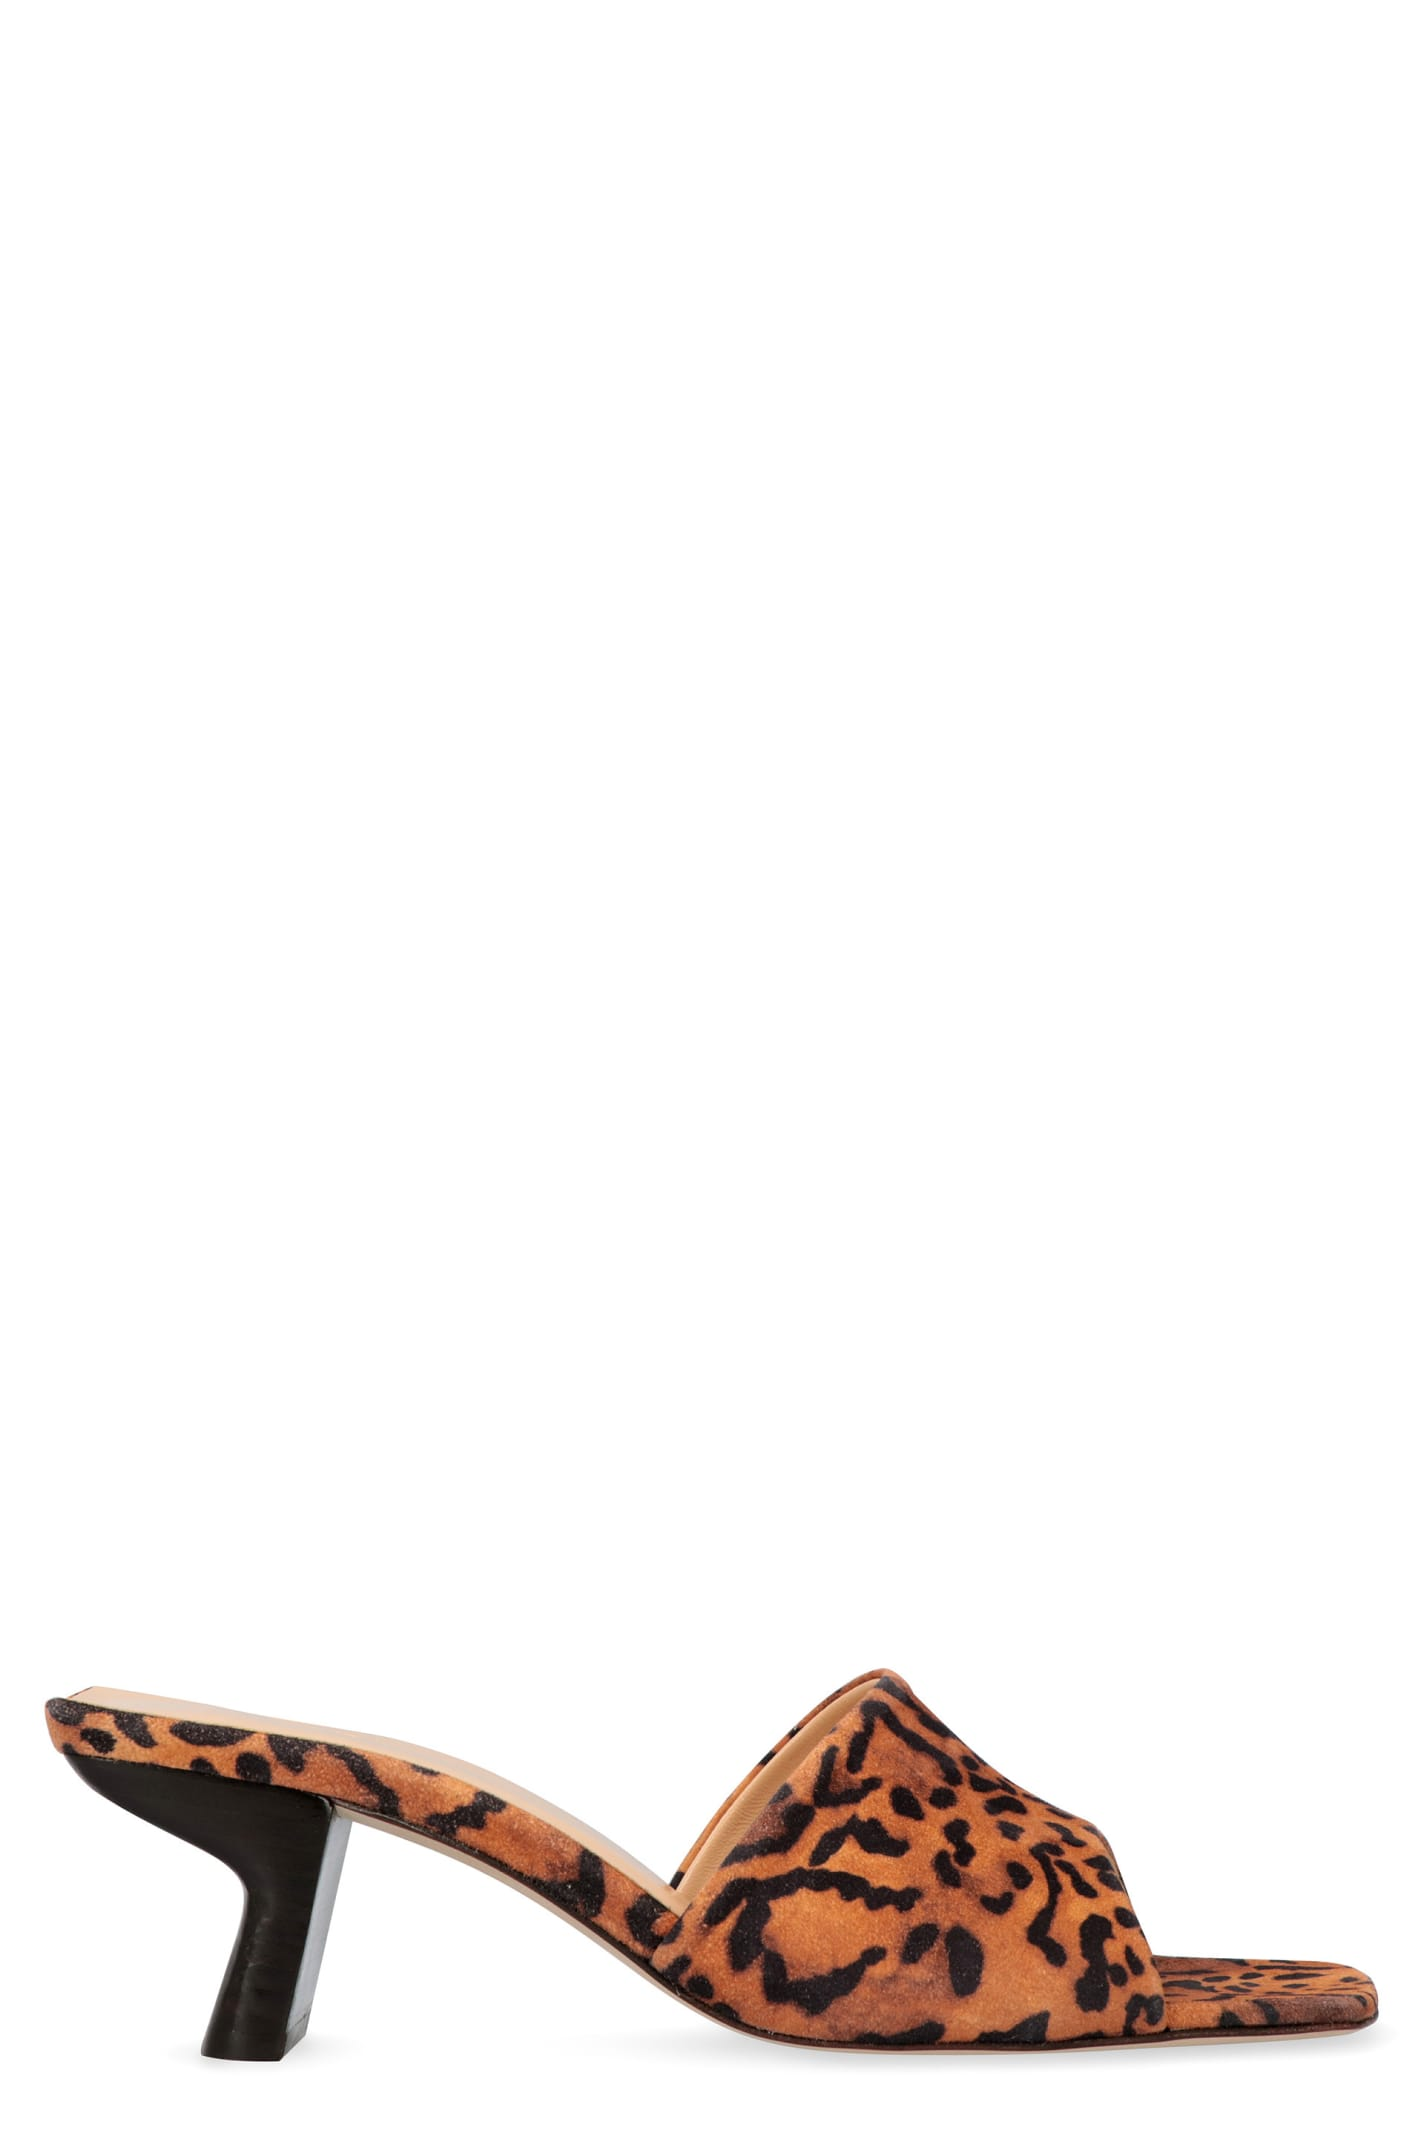 BY FAR Lily Printed Suede Mules